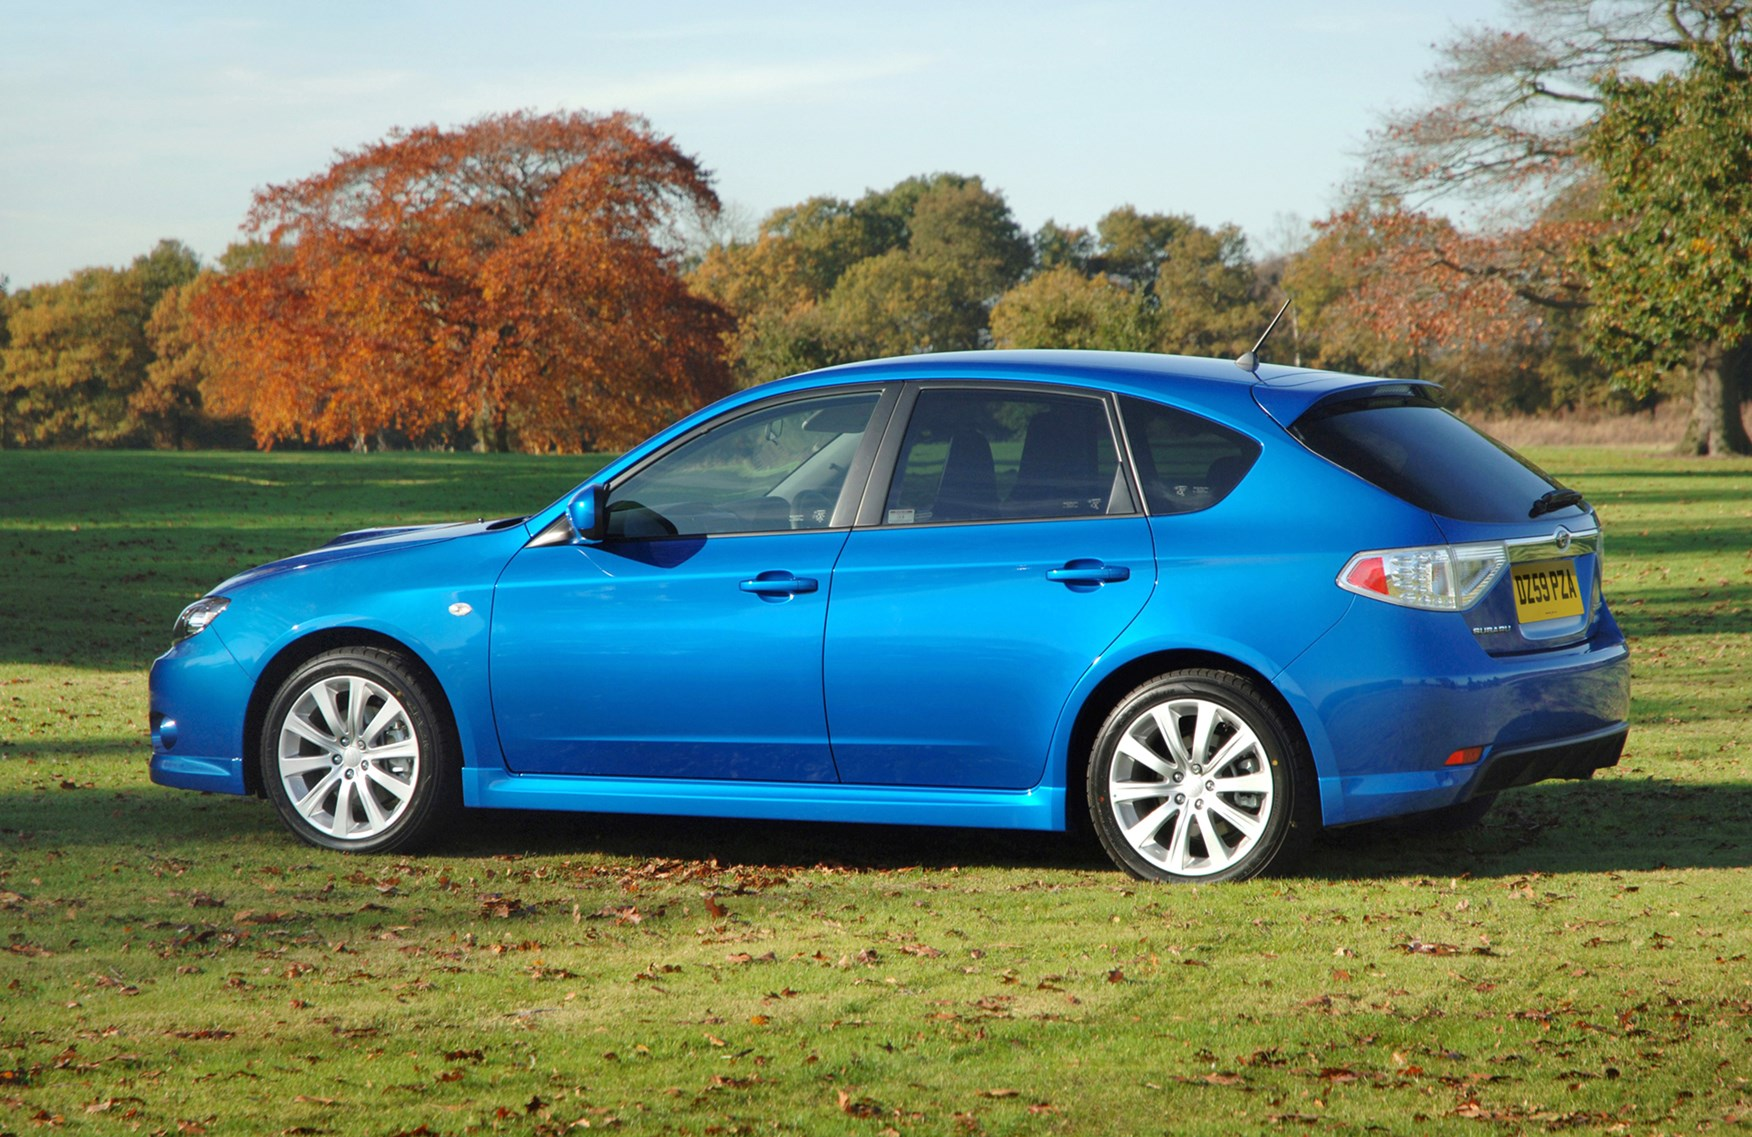 Subaru Impreza Hatchback Review 2007 2012 Parkers